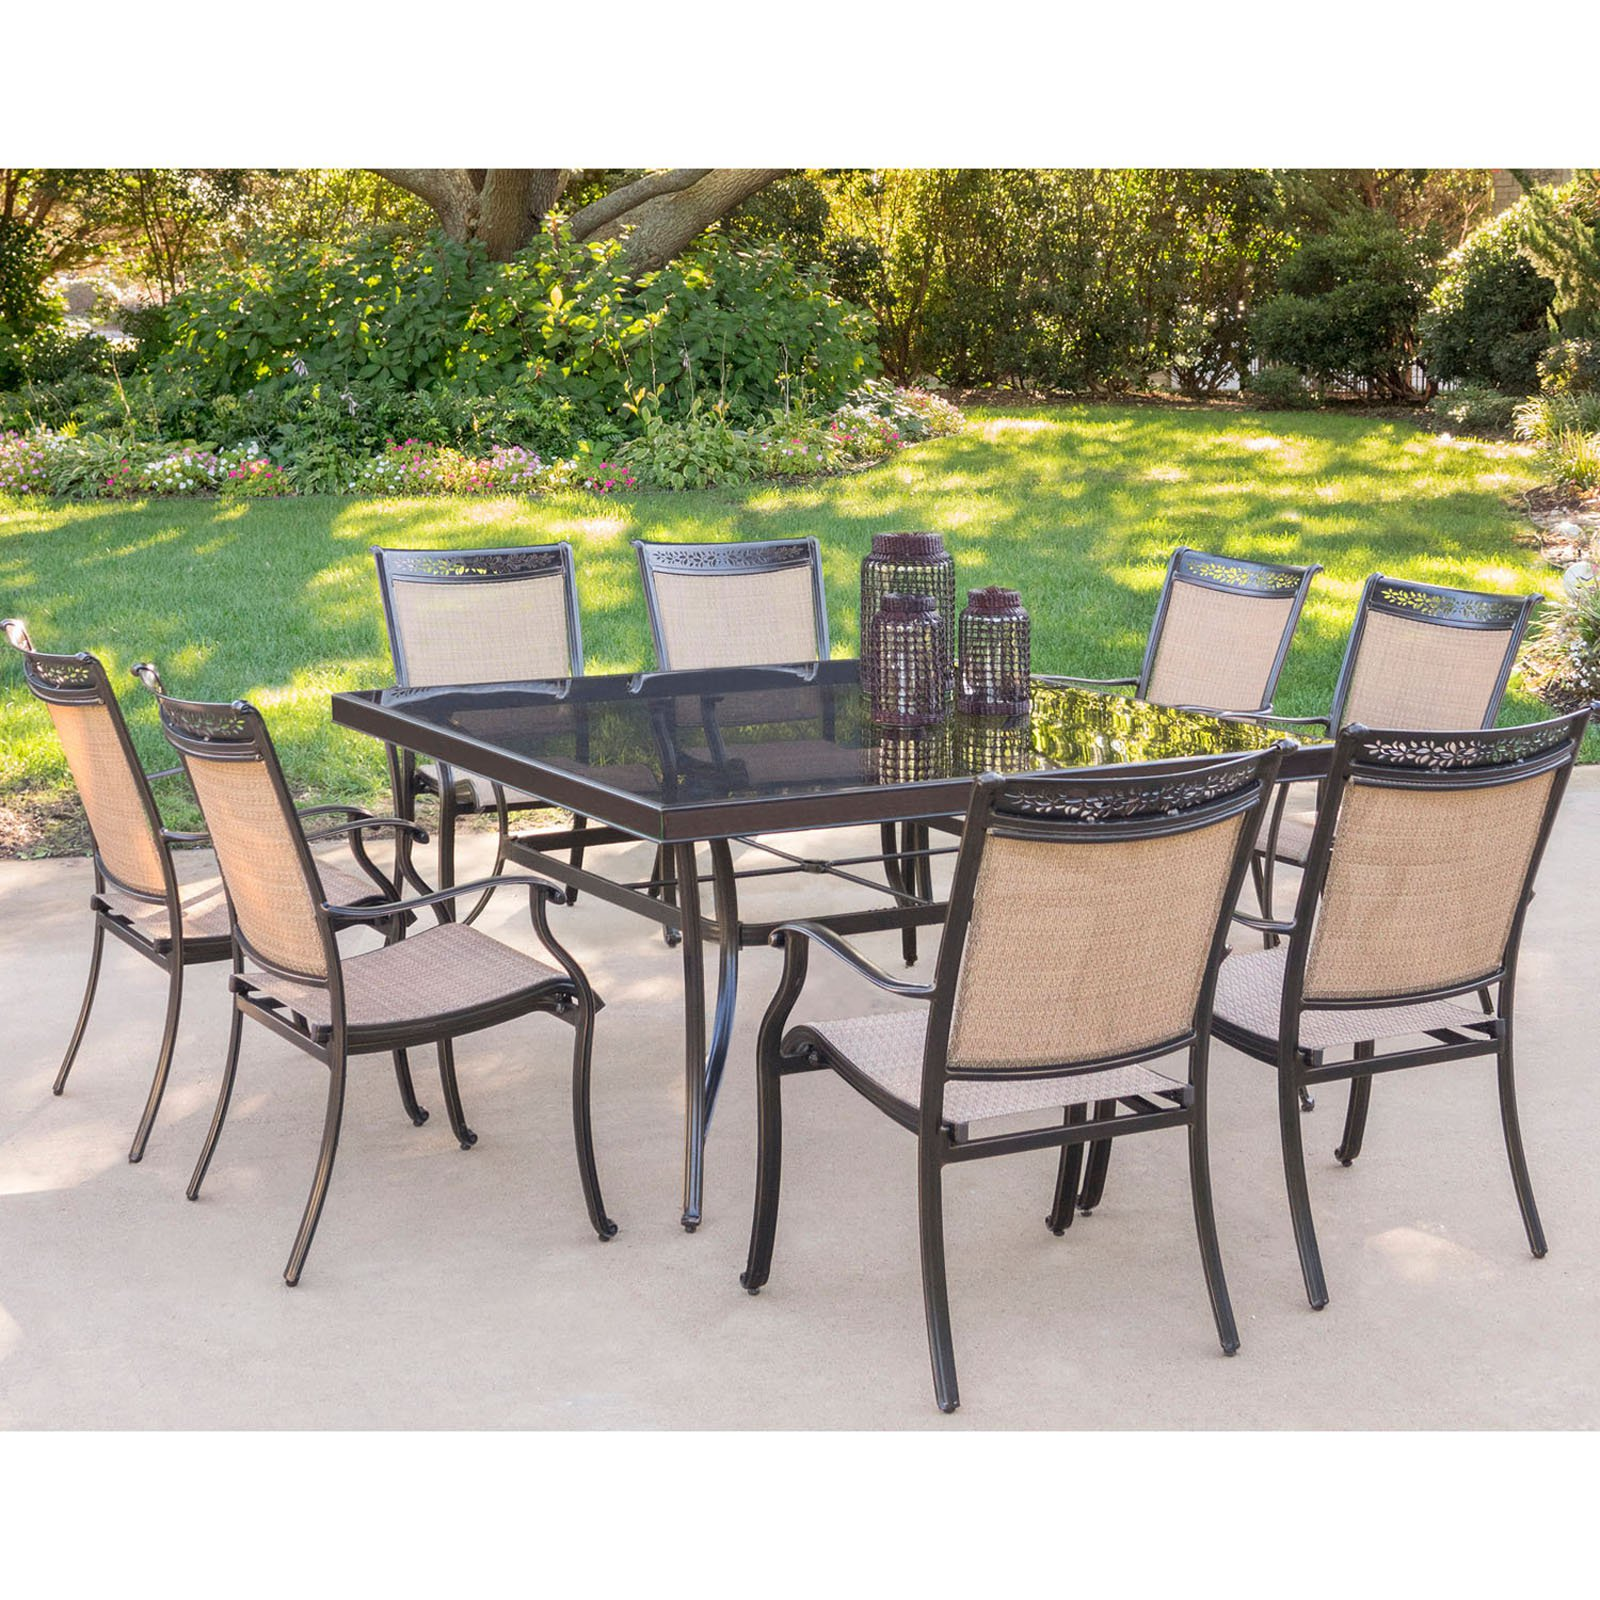 9 Piece Outdoor Dining Set Hanover Fontana 9 Piece Outdoor Dining Set With Square Glass Top Table